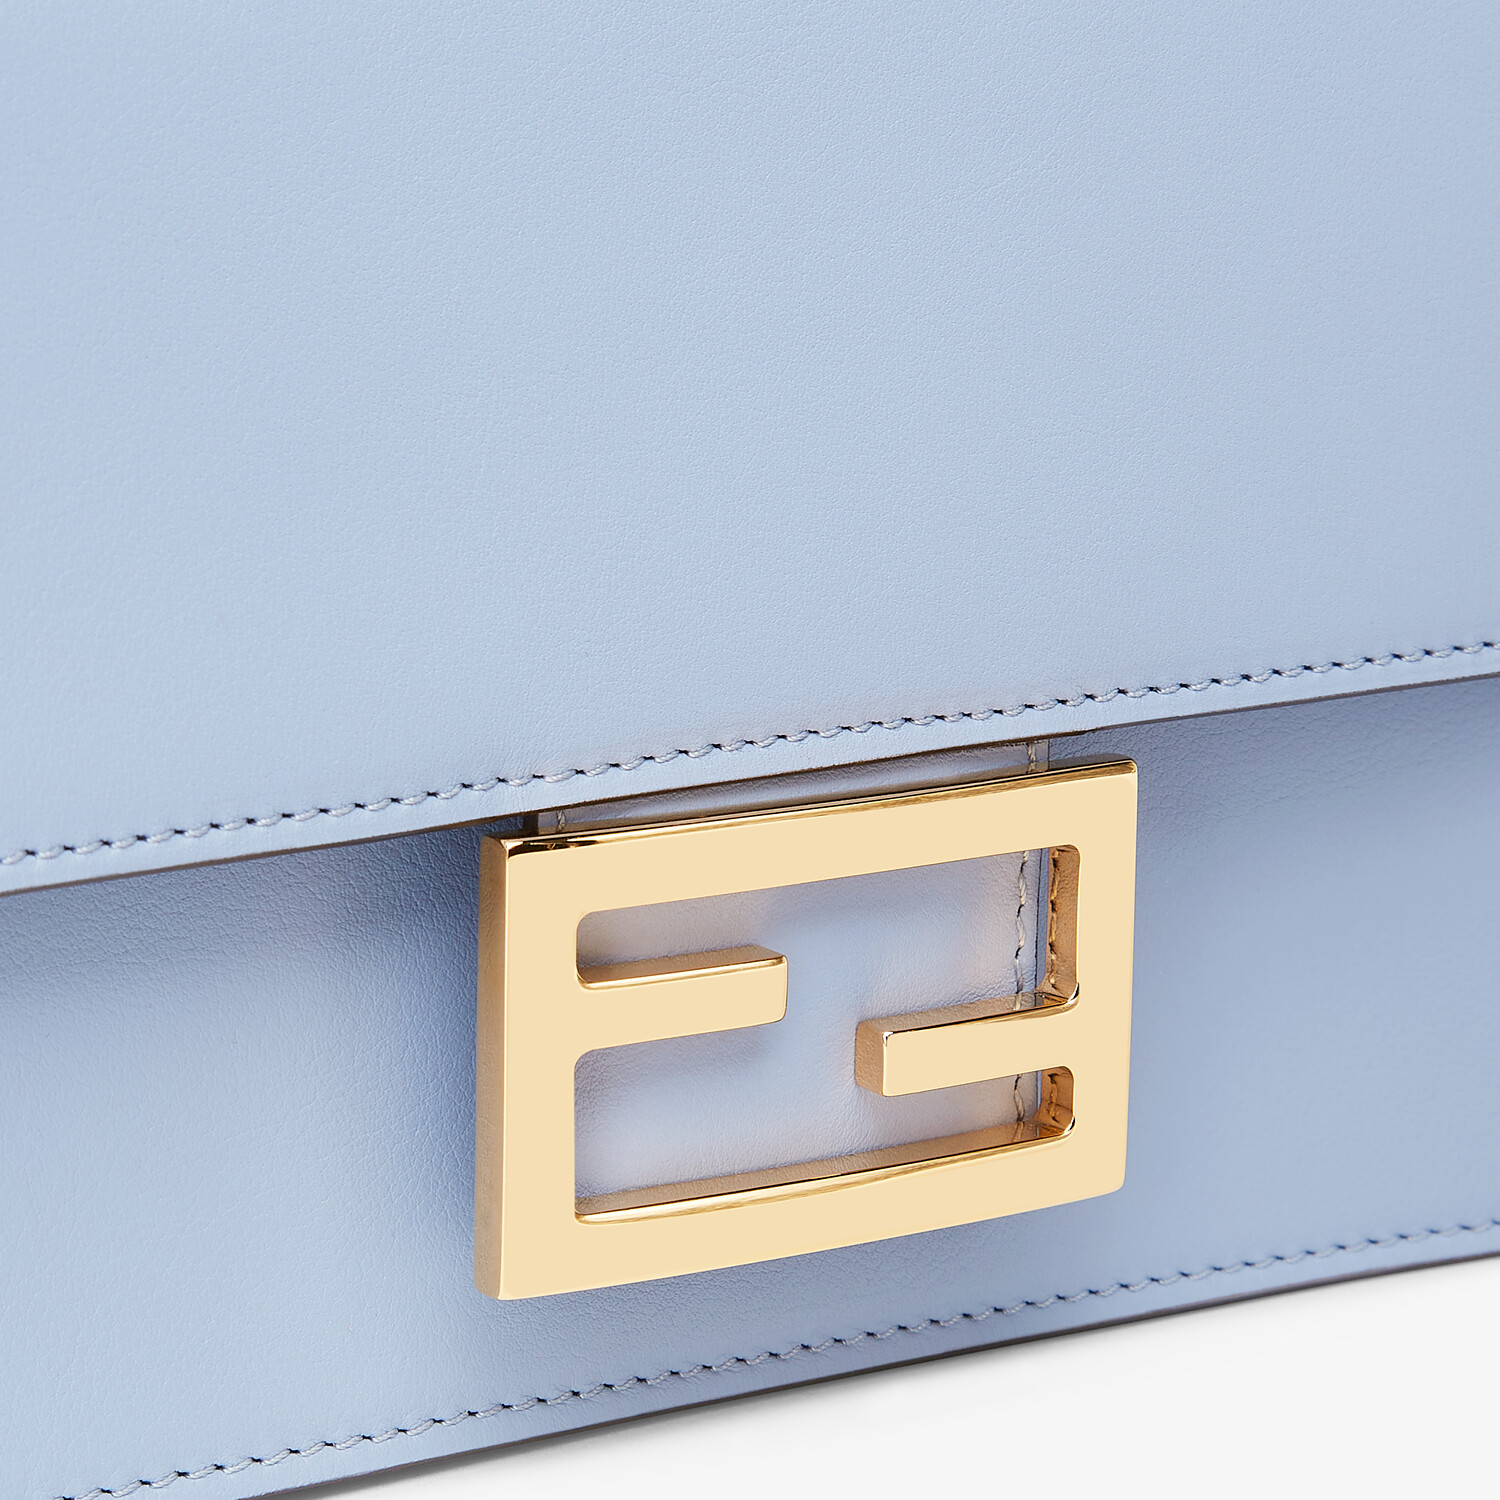 FENDI FLAT BAGUETTE - Light blue leather mini-bag - view 6 detail